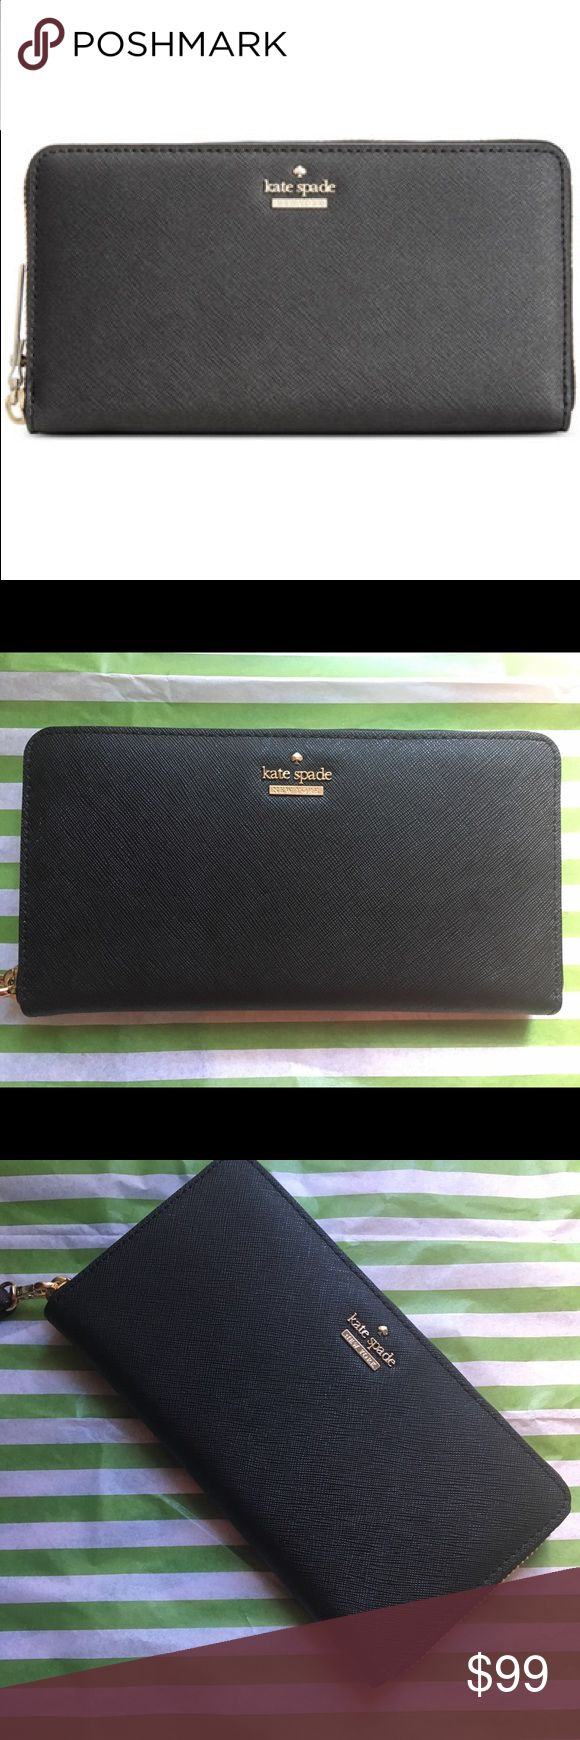 """Kate Spade Cameron Street Lacey Black New This Kate Spade Cameron Street Lacey Wallet is NWOT. Classic continental zip-around wallet has 12 credit card slots, 2 interior billfolds, 1 interior zip pocket and 1 exterior slip pocket. Stripe black and white interior lining. Dimensions approximately 7..6"""" x 4"""" x 0.8"""". kate spade Bags Wallets"""